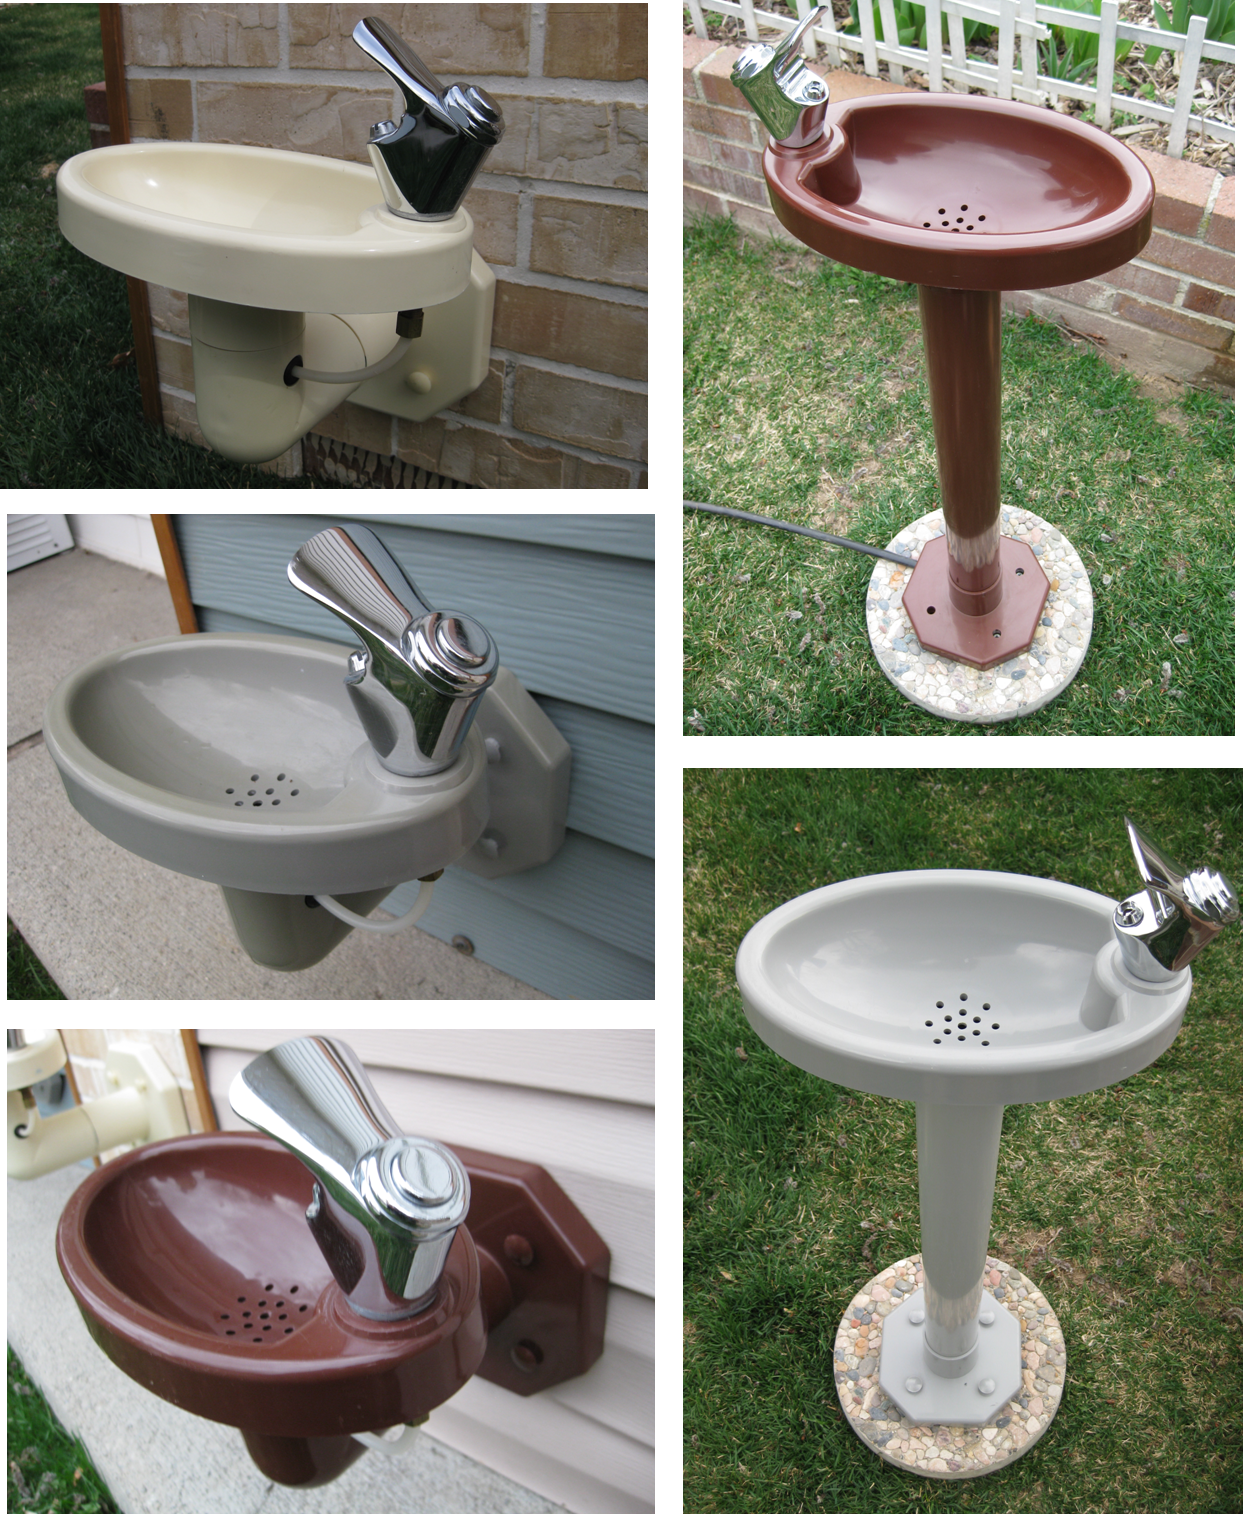 Outdoor Drinking Fountain For The Kids In The Back Yard Then They